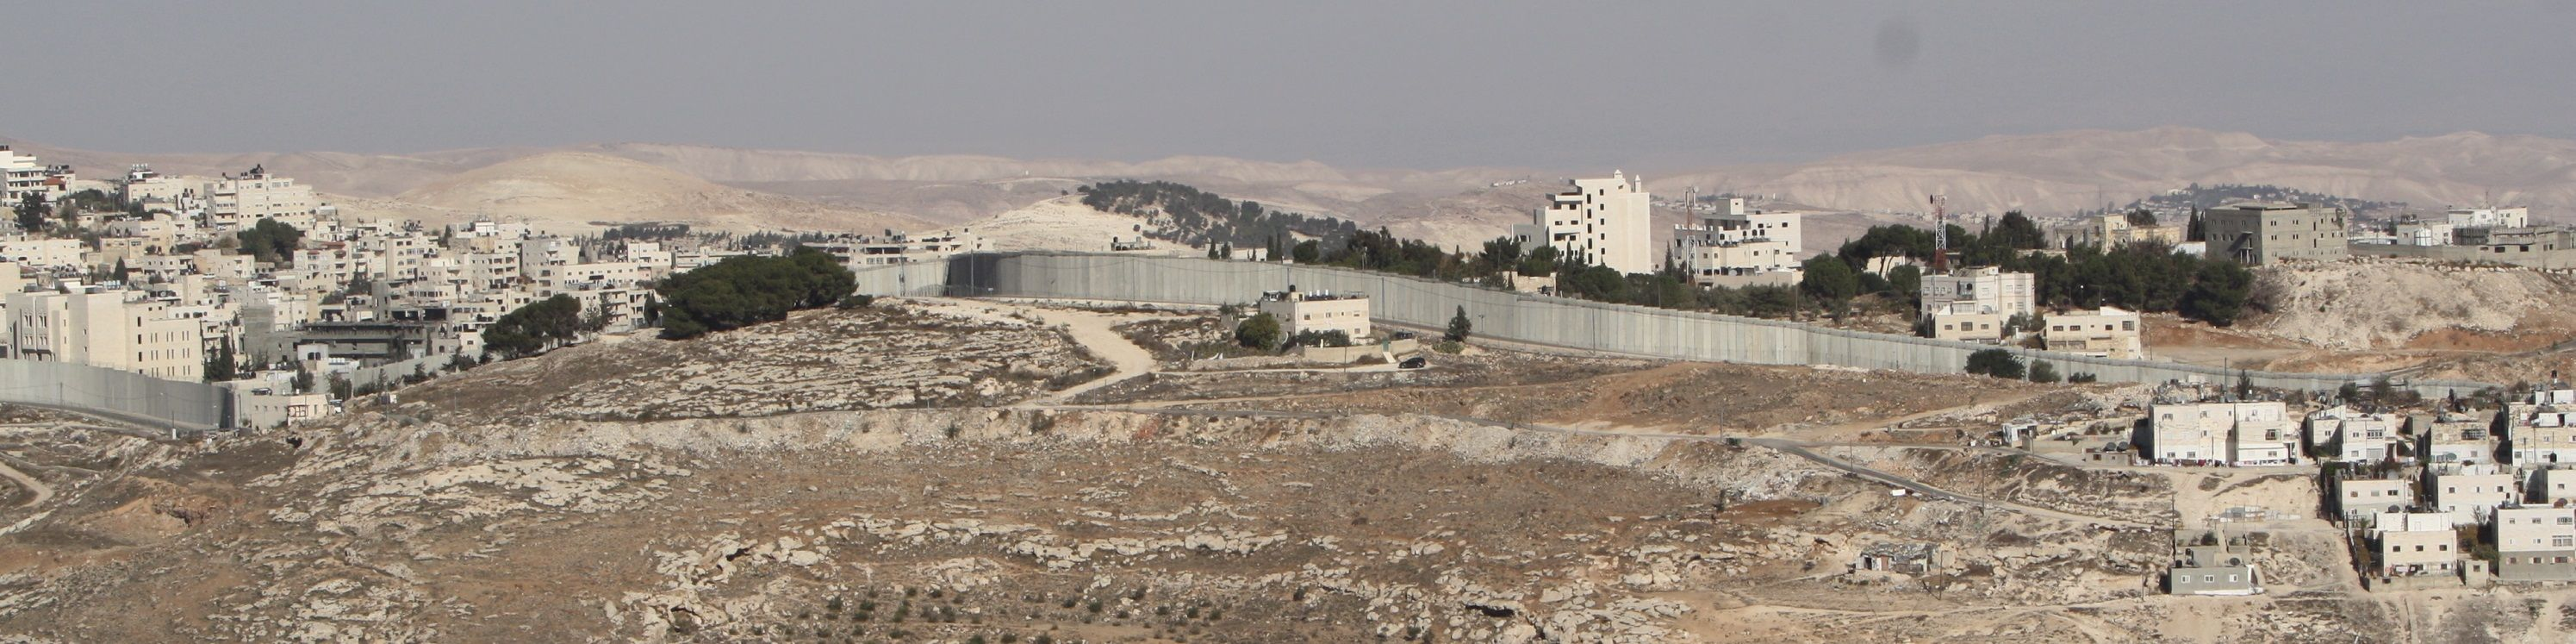 West bank pict